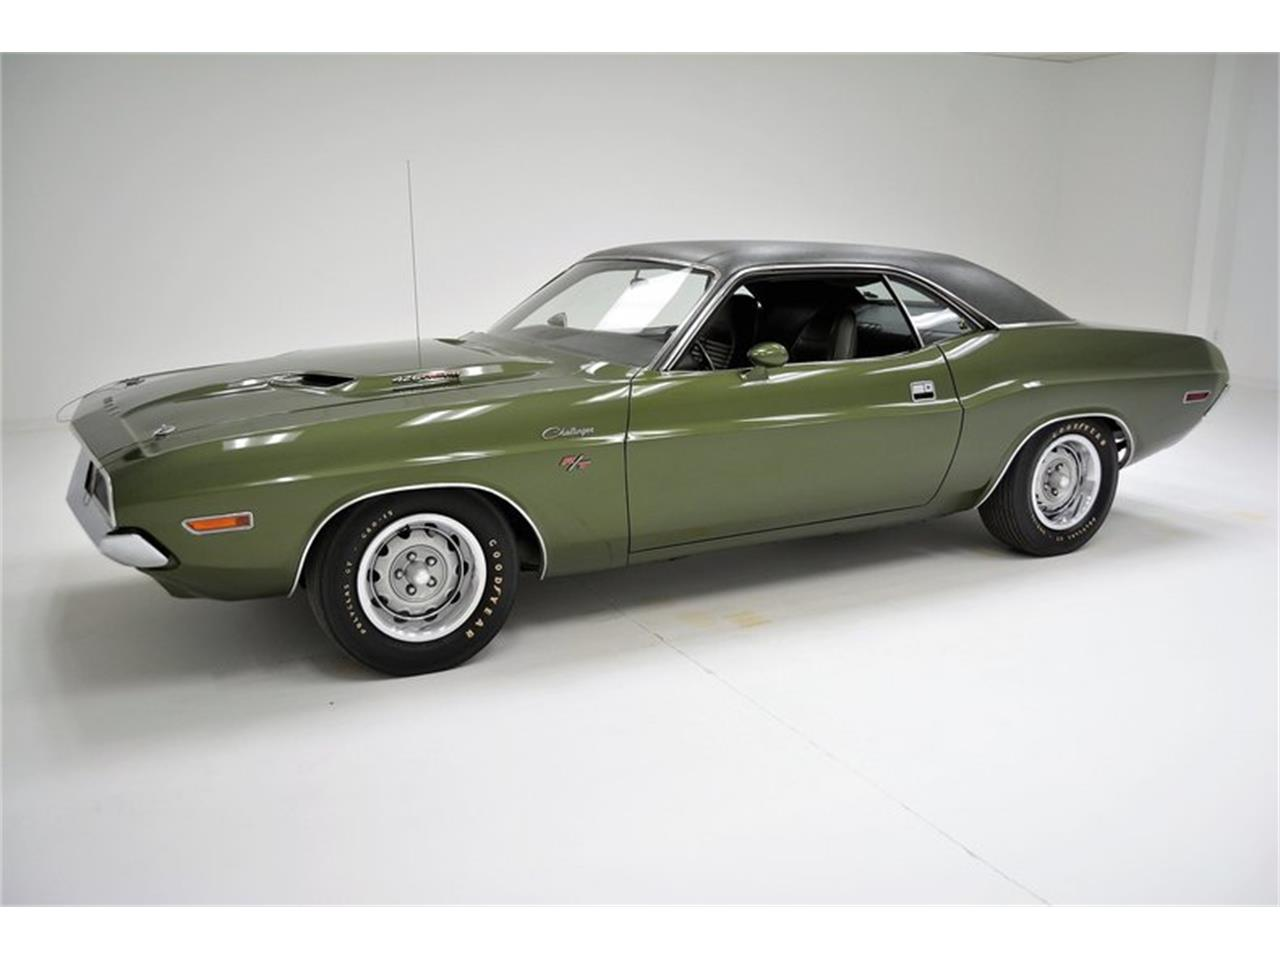 Large Picture of Classic '70 Challenger R/T - $395,000.00 Offered by Classic Auto Mall - MZHE